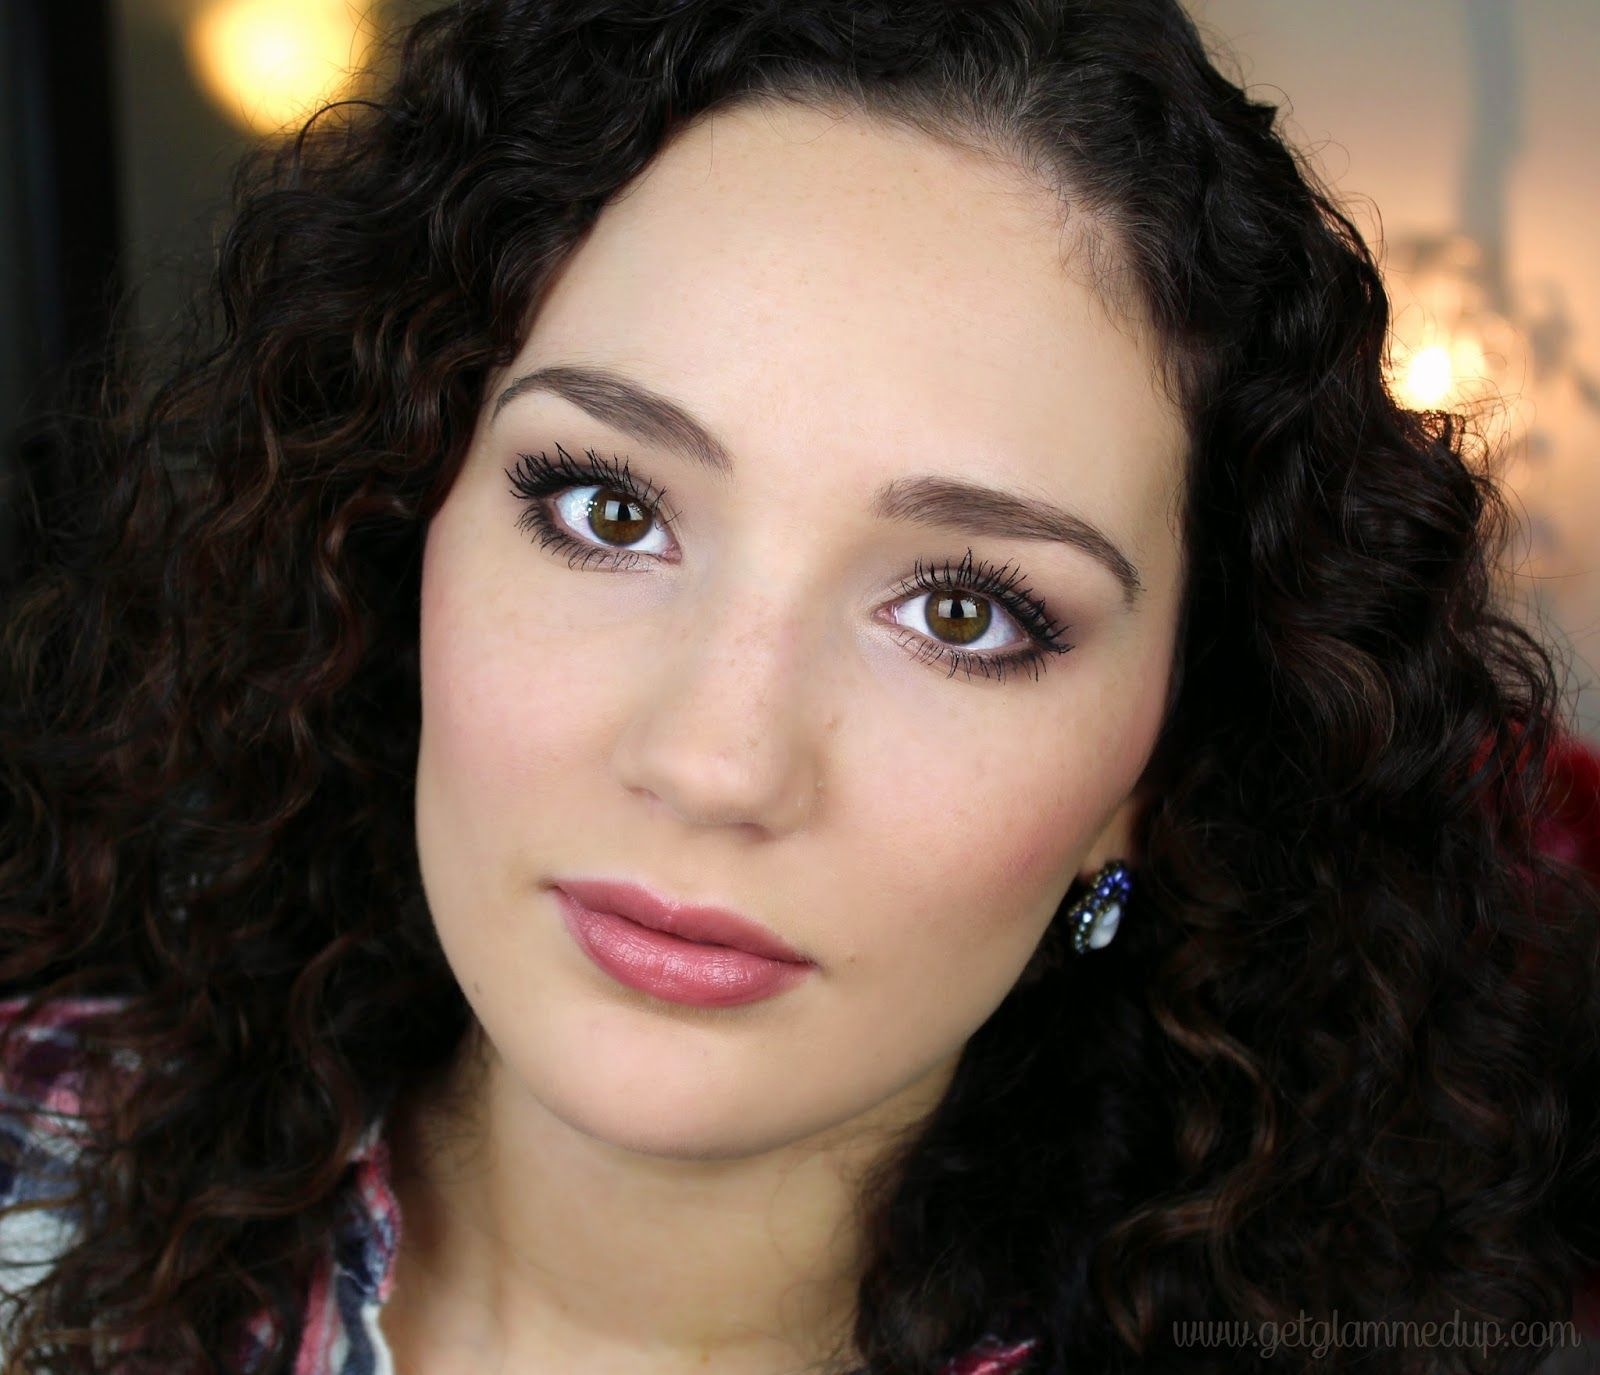 Pin by Gena M on Makeup Tutorials Fall makeup tutorial